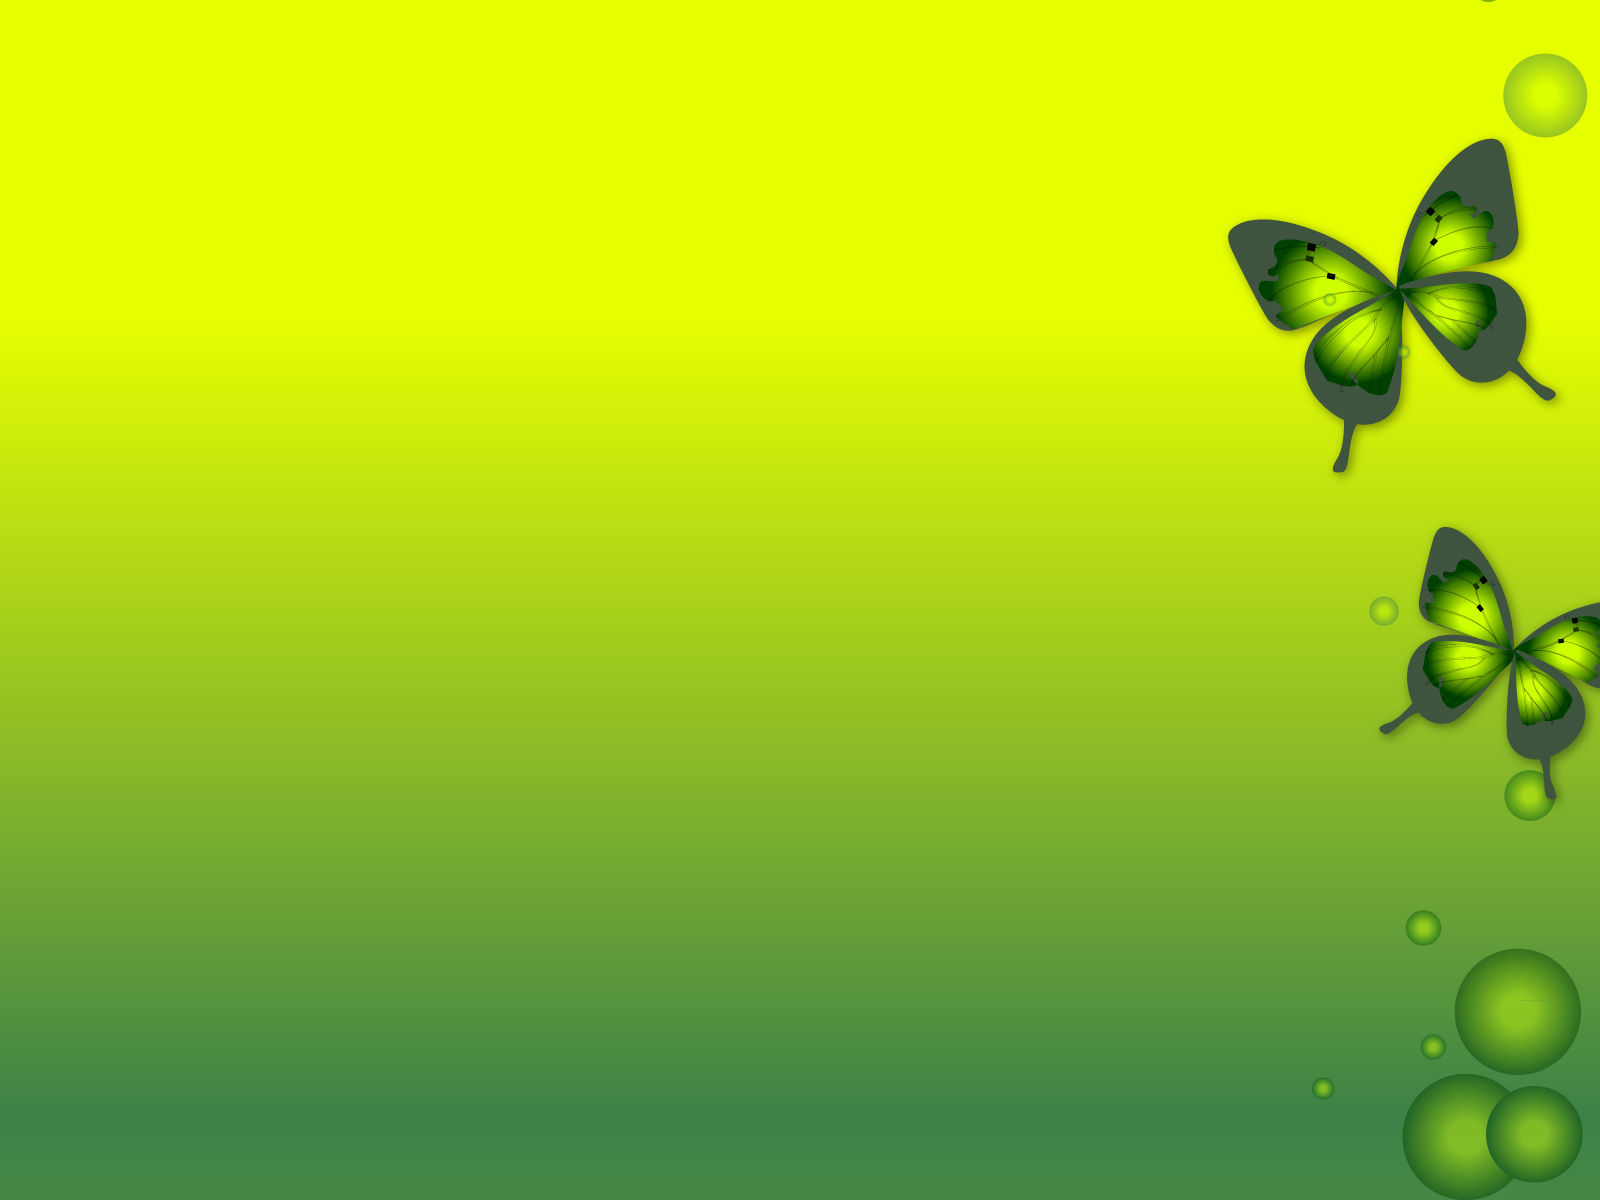 powerpoint background images clipart best